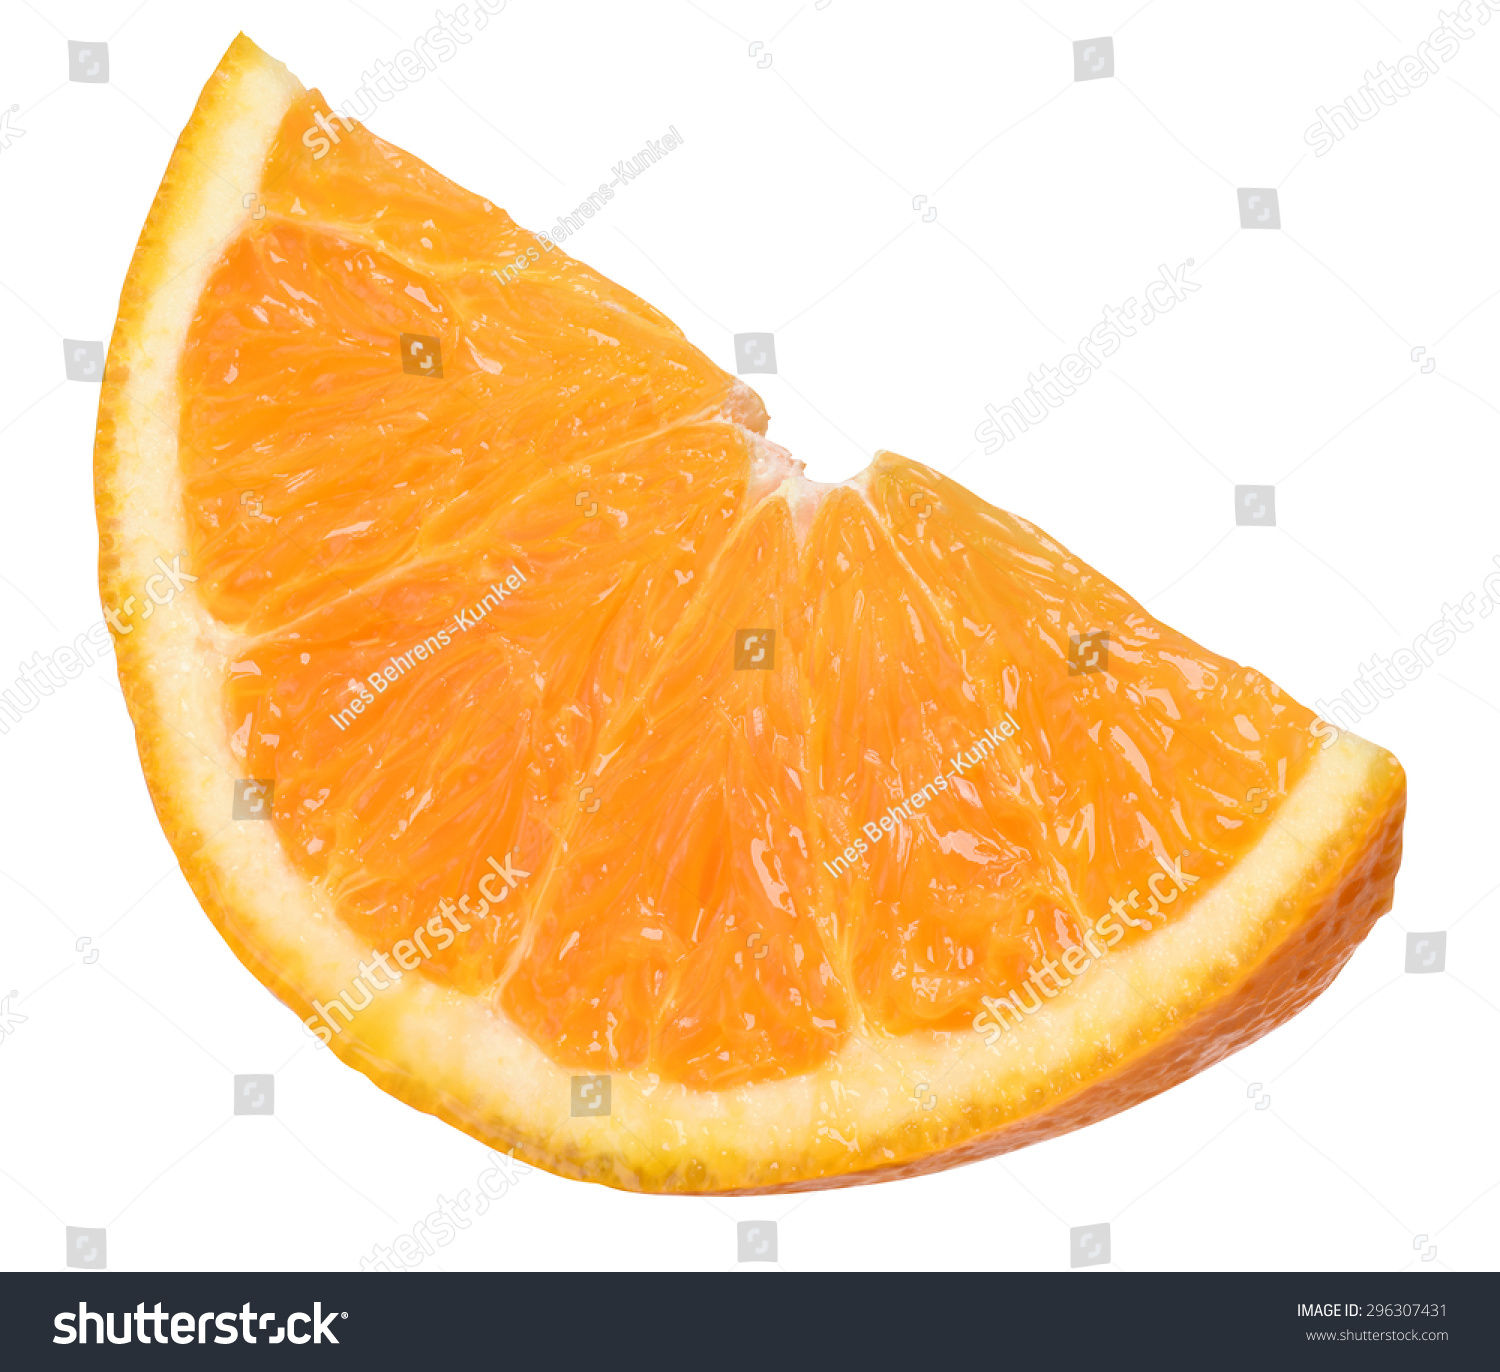 Juicy Slice Orange Stock Photo (Royalty Free) 296307431 - Shutterstock